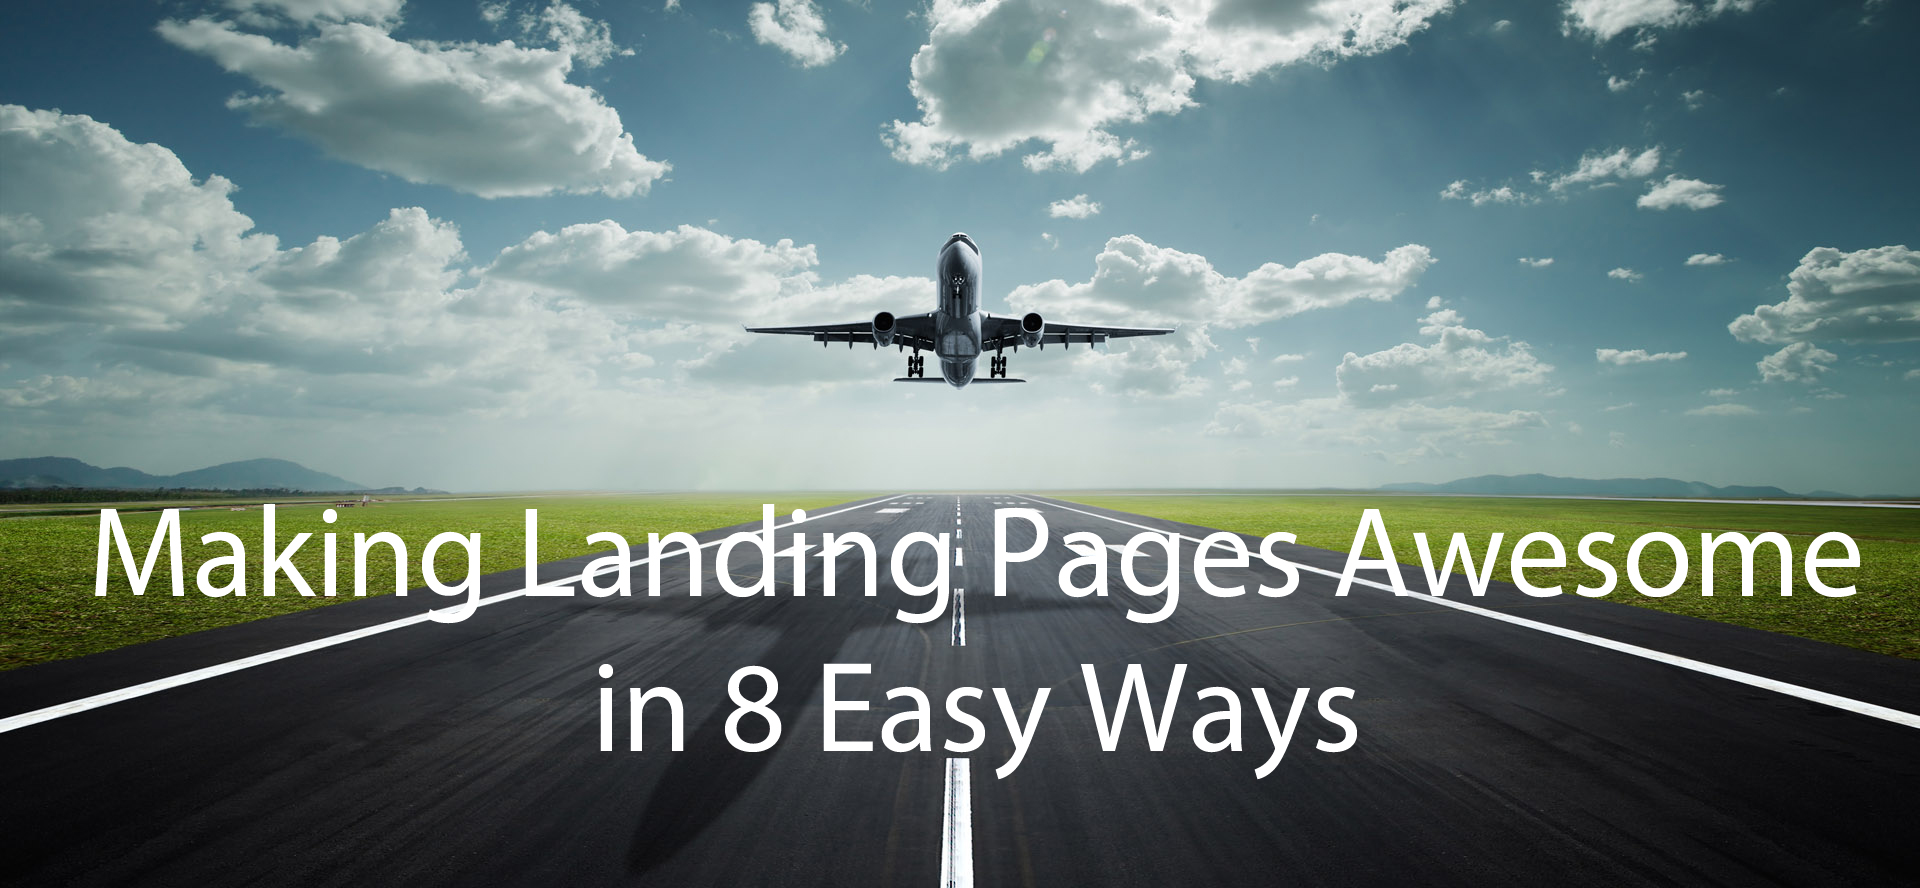 Making Landing Pages Awesome in 8 Easy Ways